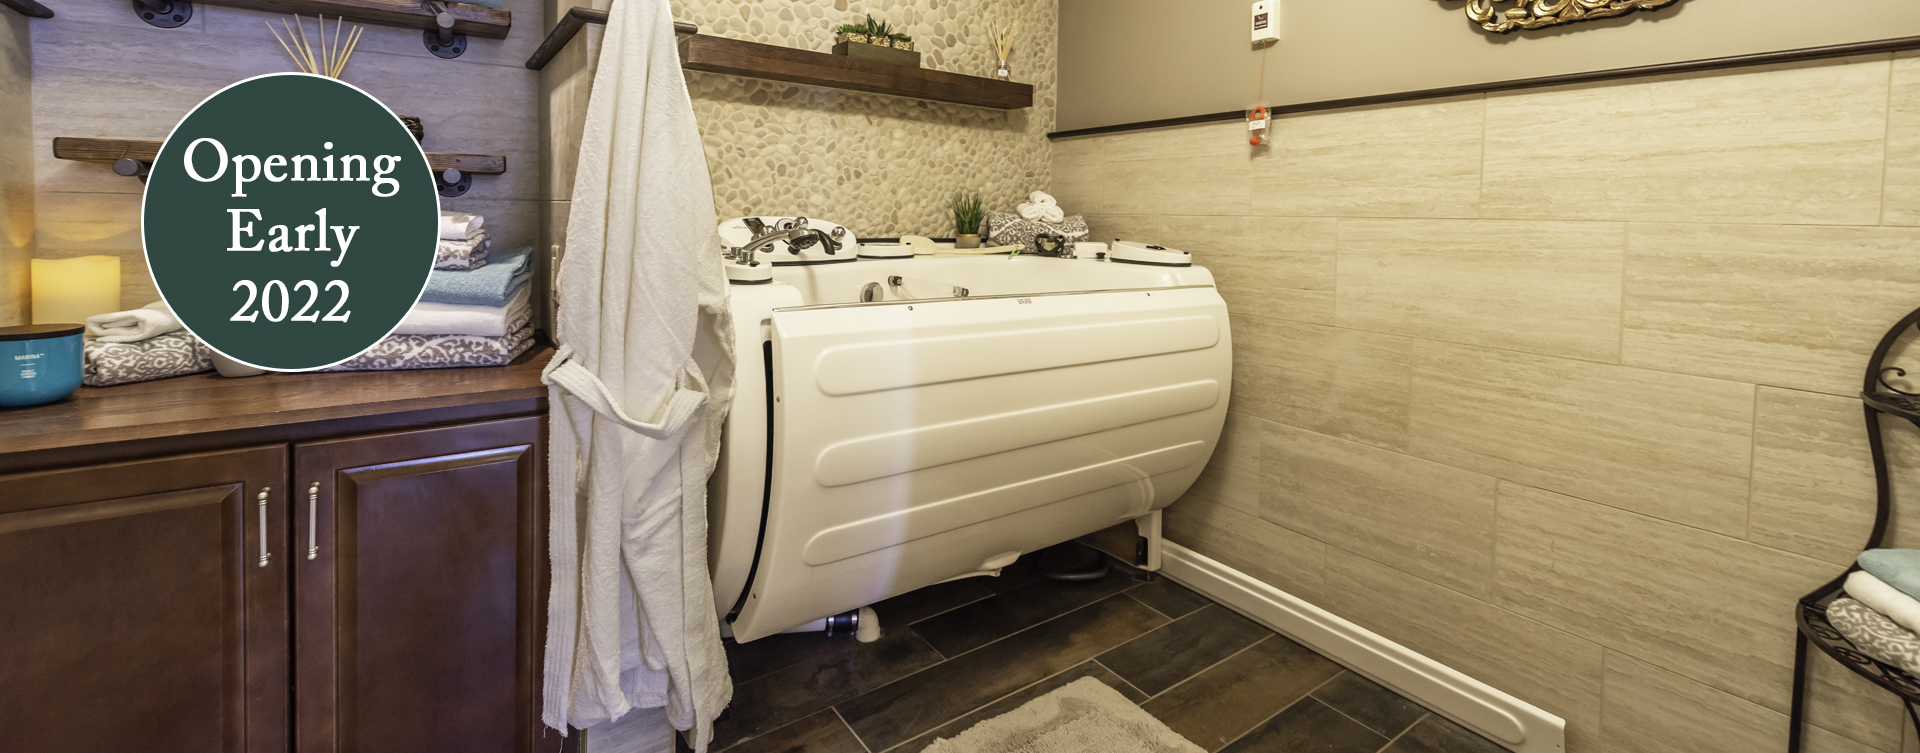 Our whirlpool bathtub creates a spa-like environment tailored to enhance your relaxation and enjoyment at Bickford of Chesapeake